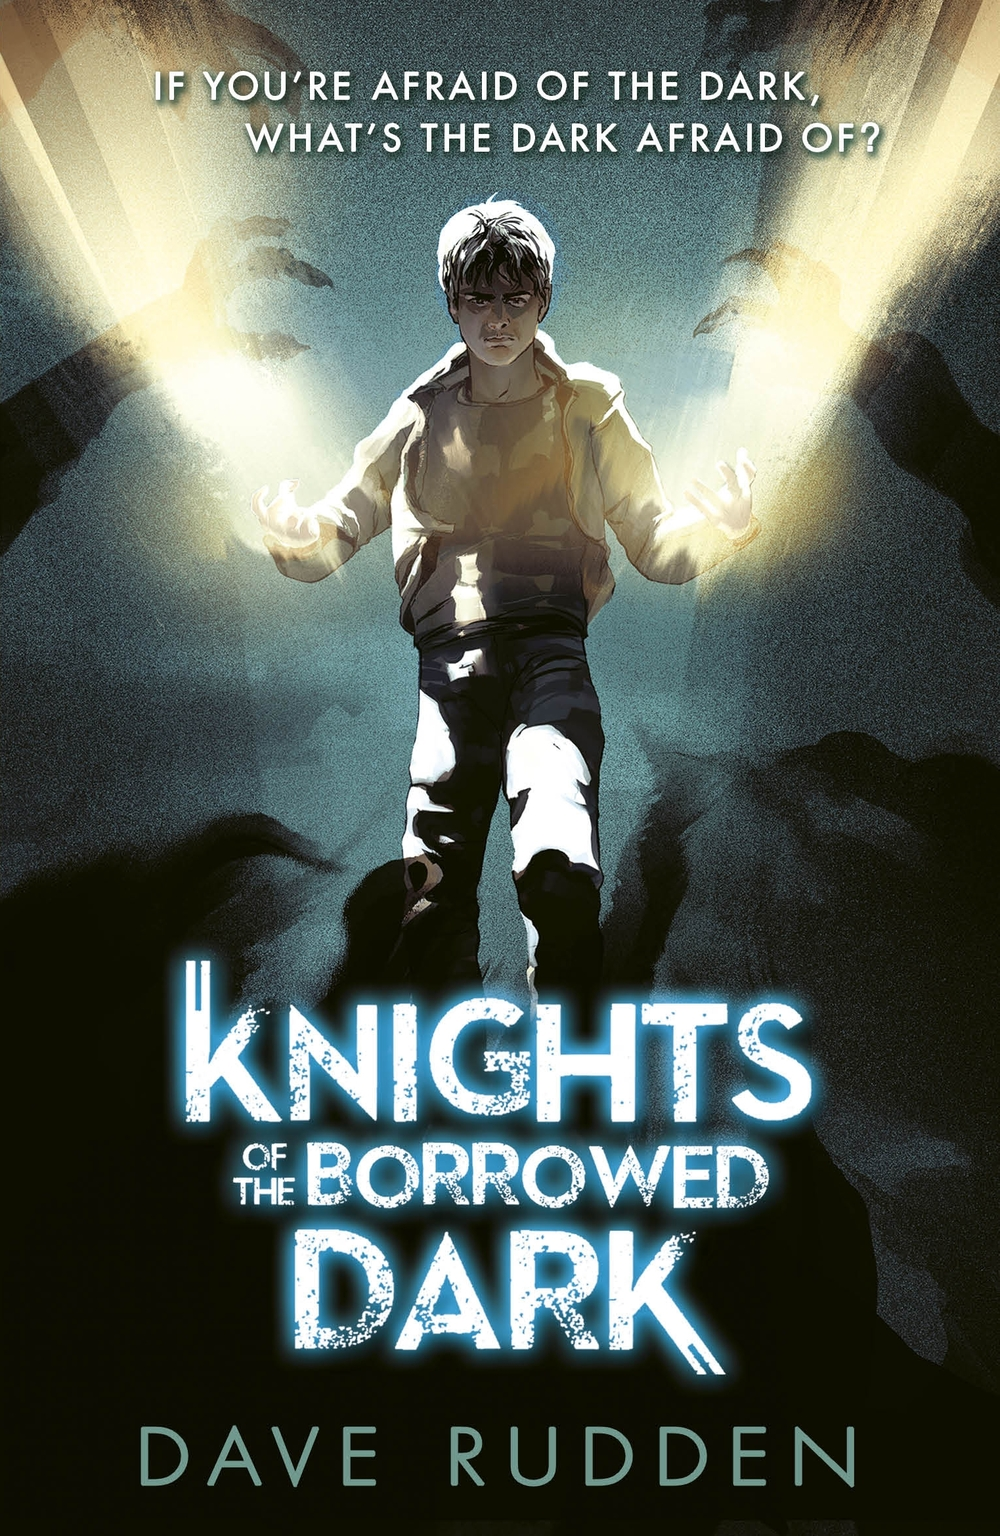 Knights of the Borrowed Dark.jpg